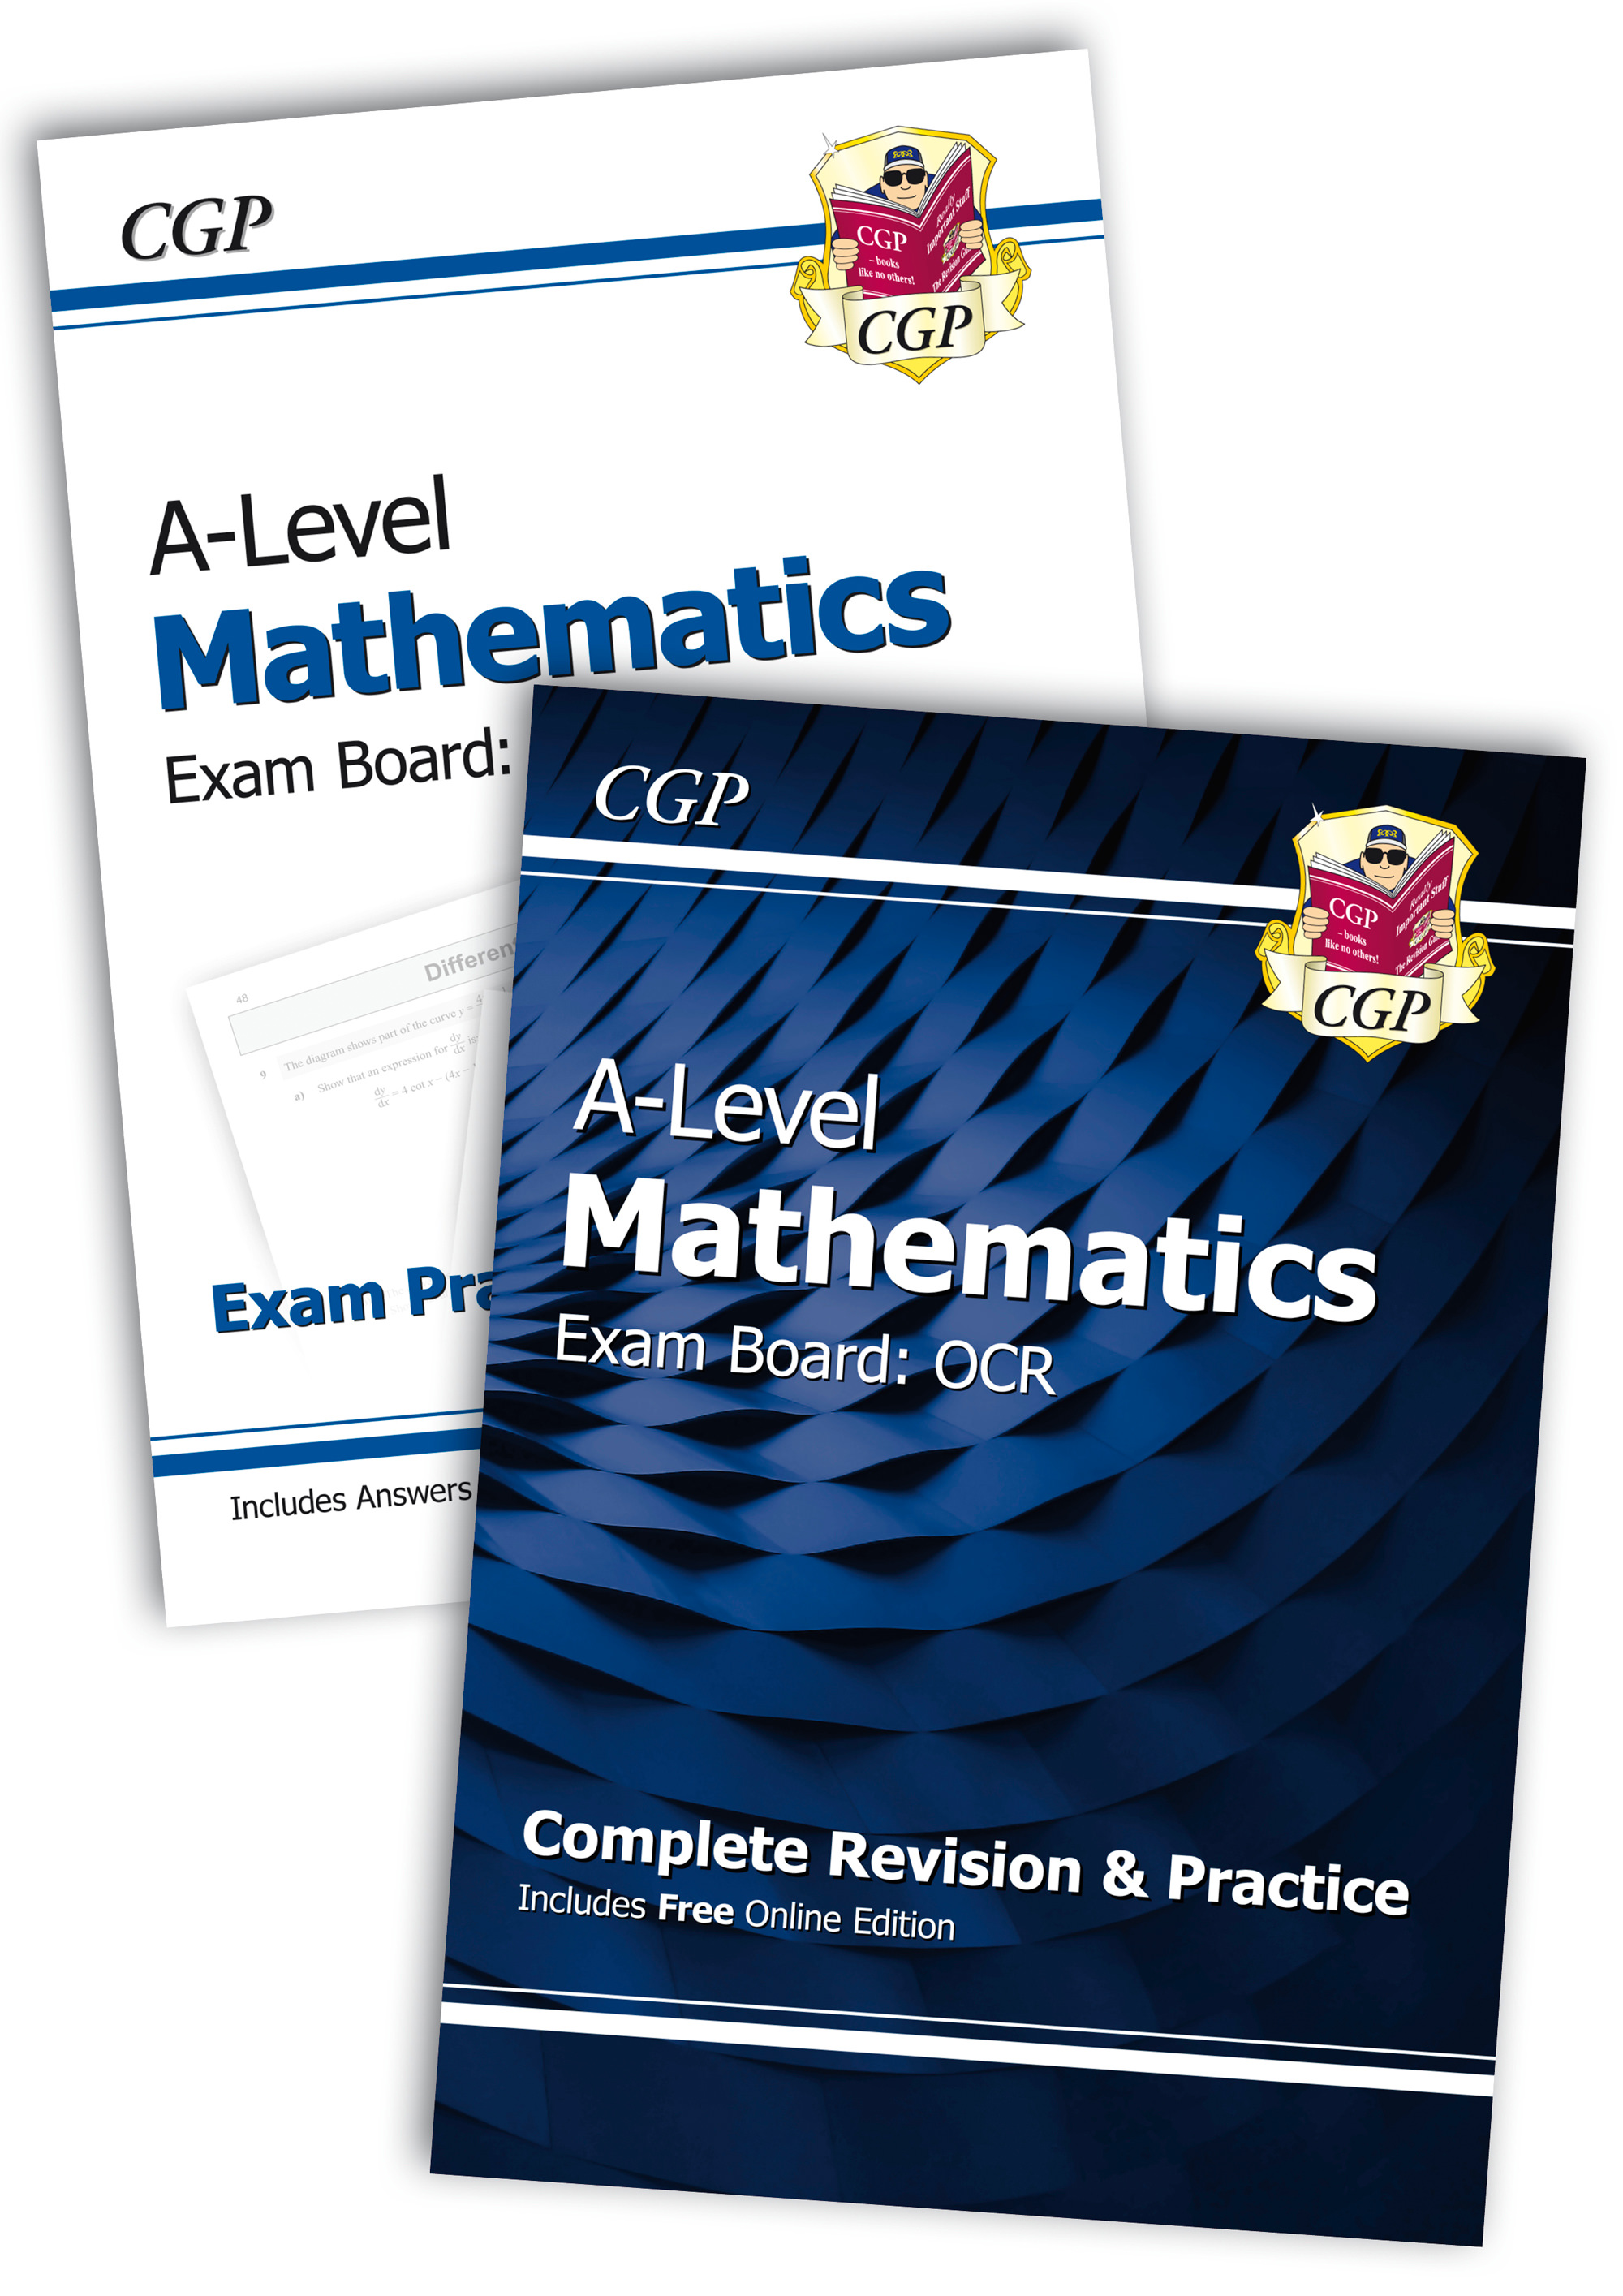 MRAB71 - New Complete Revision and Exam Practice A-Level Maths Bundle: OCR Year 1 & 2